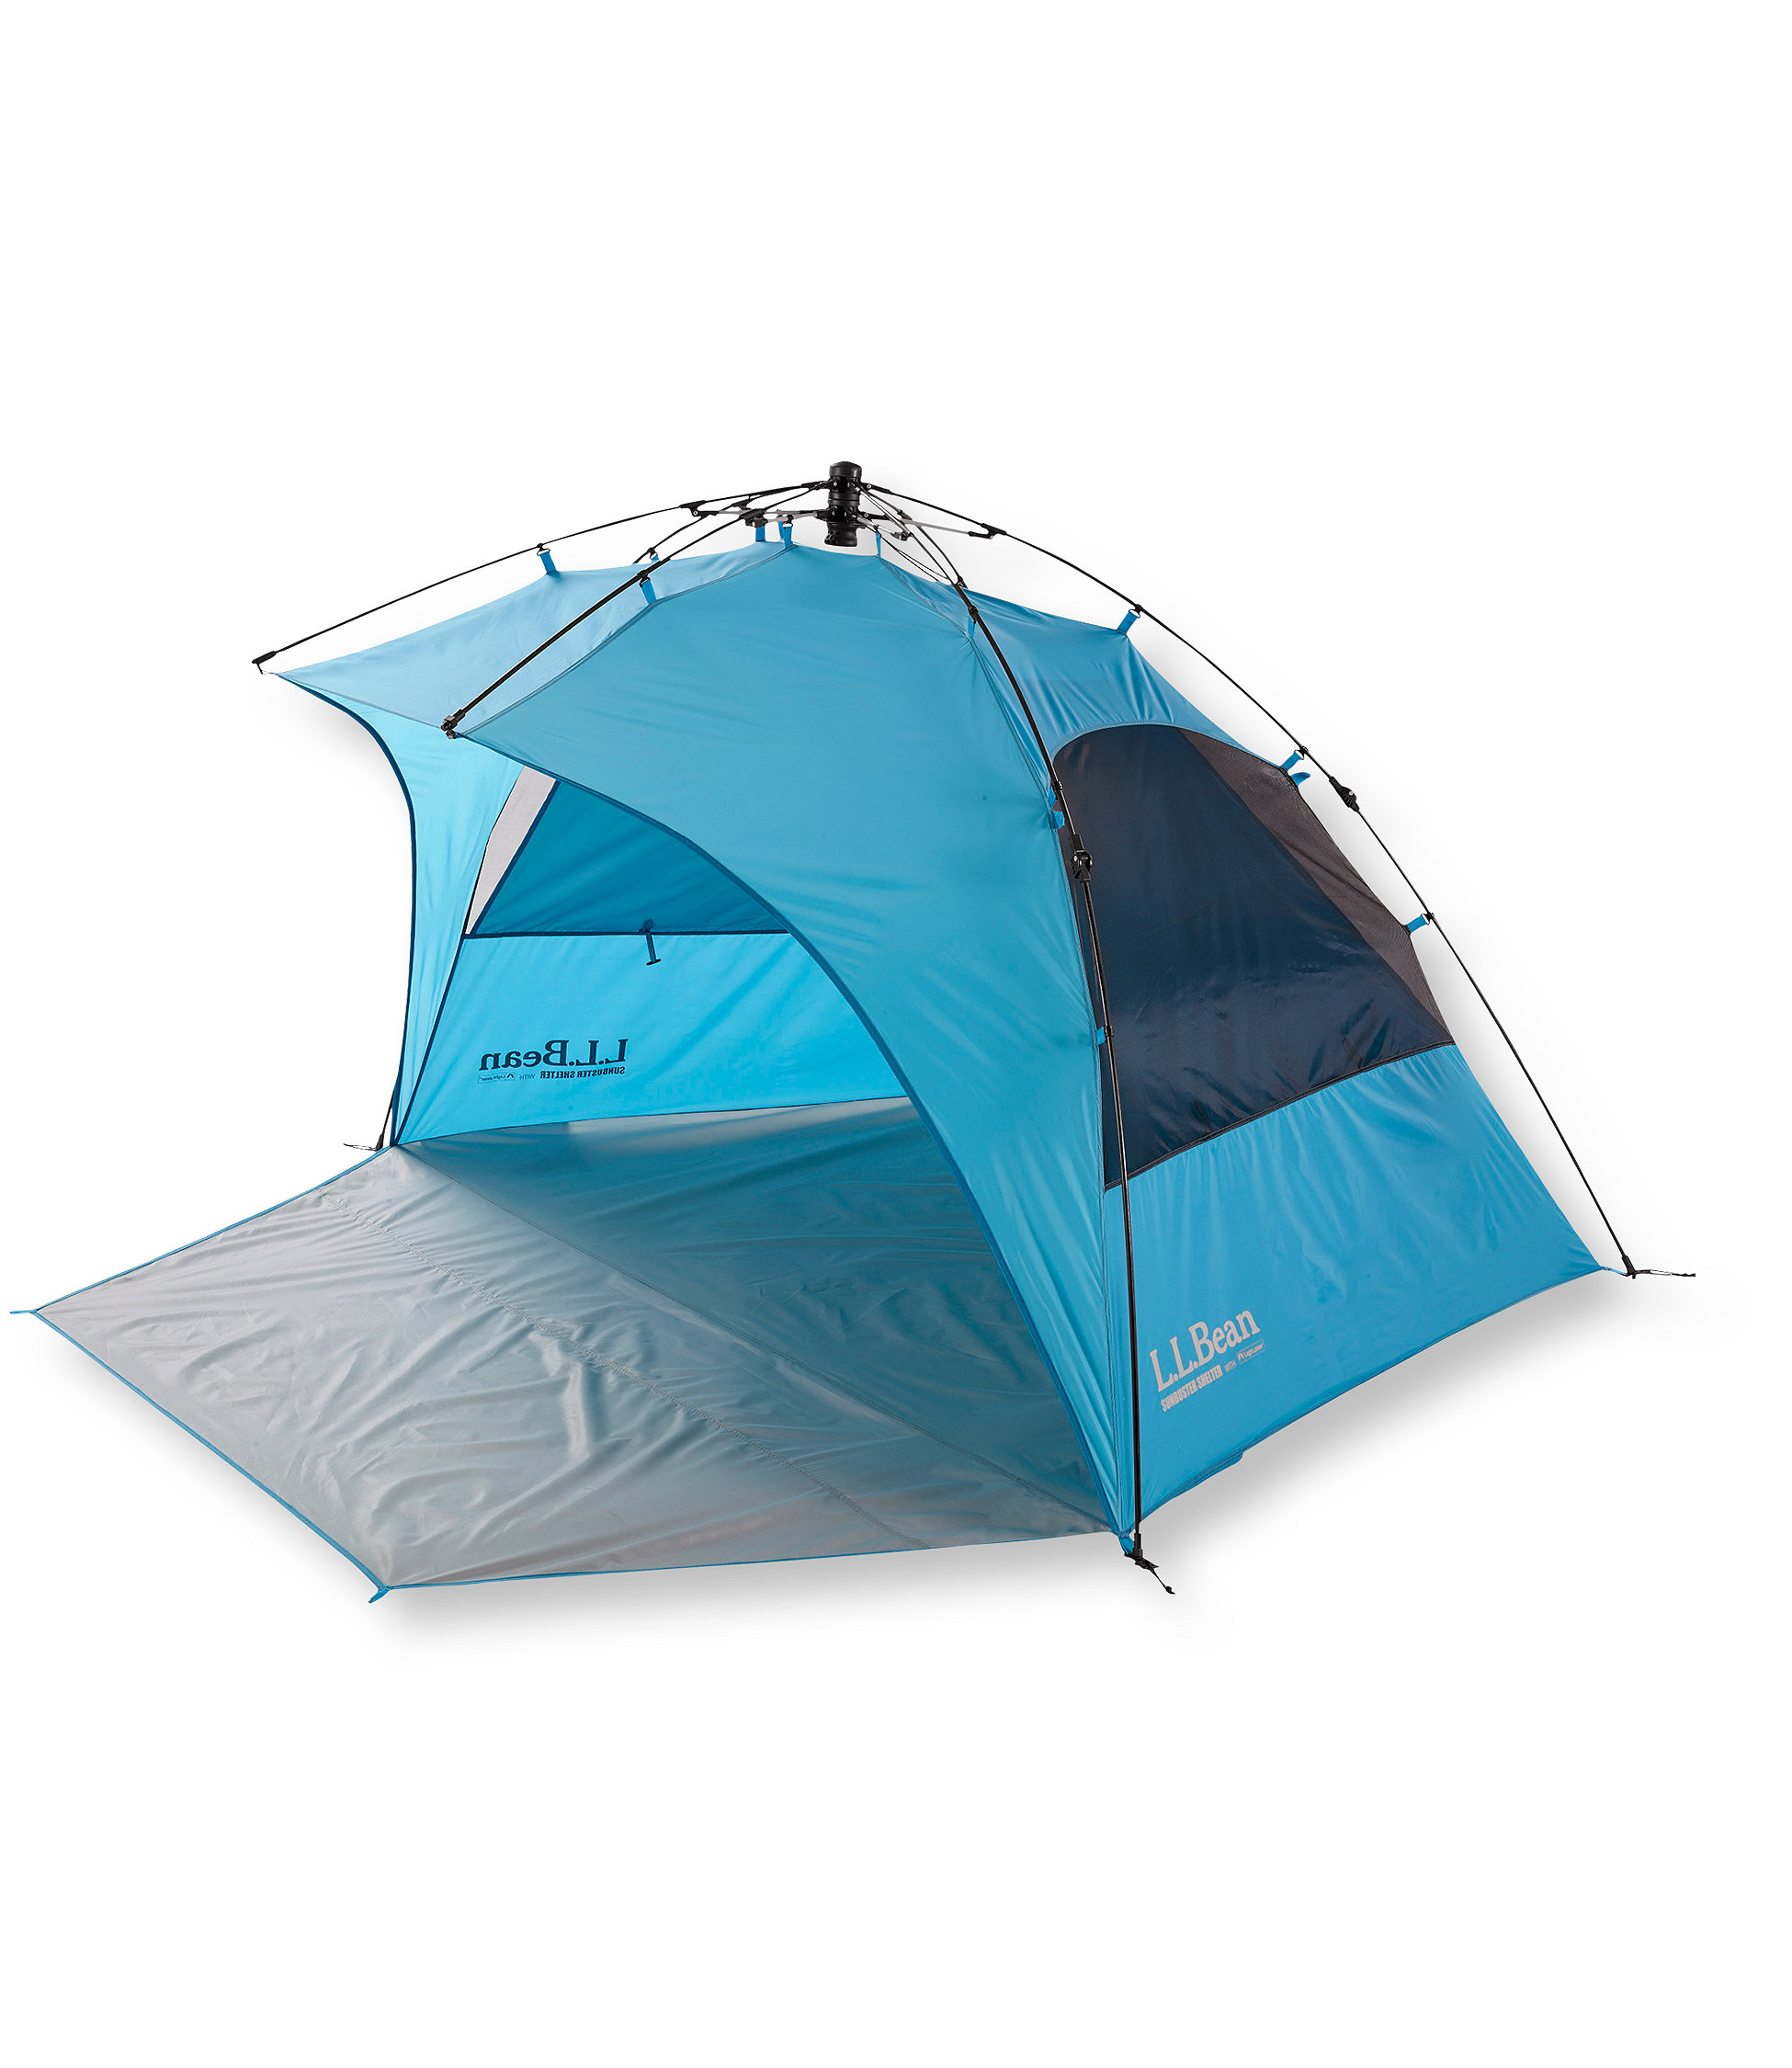 L.L.Bean Sunbuster Folding Shelter